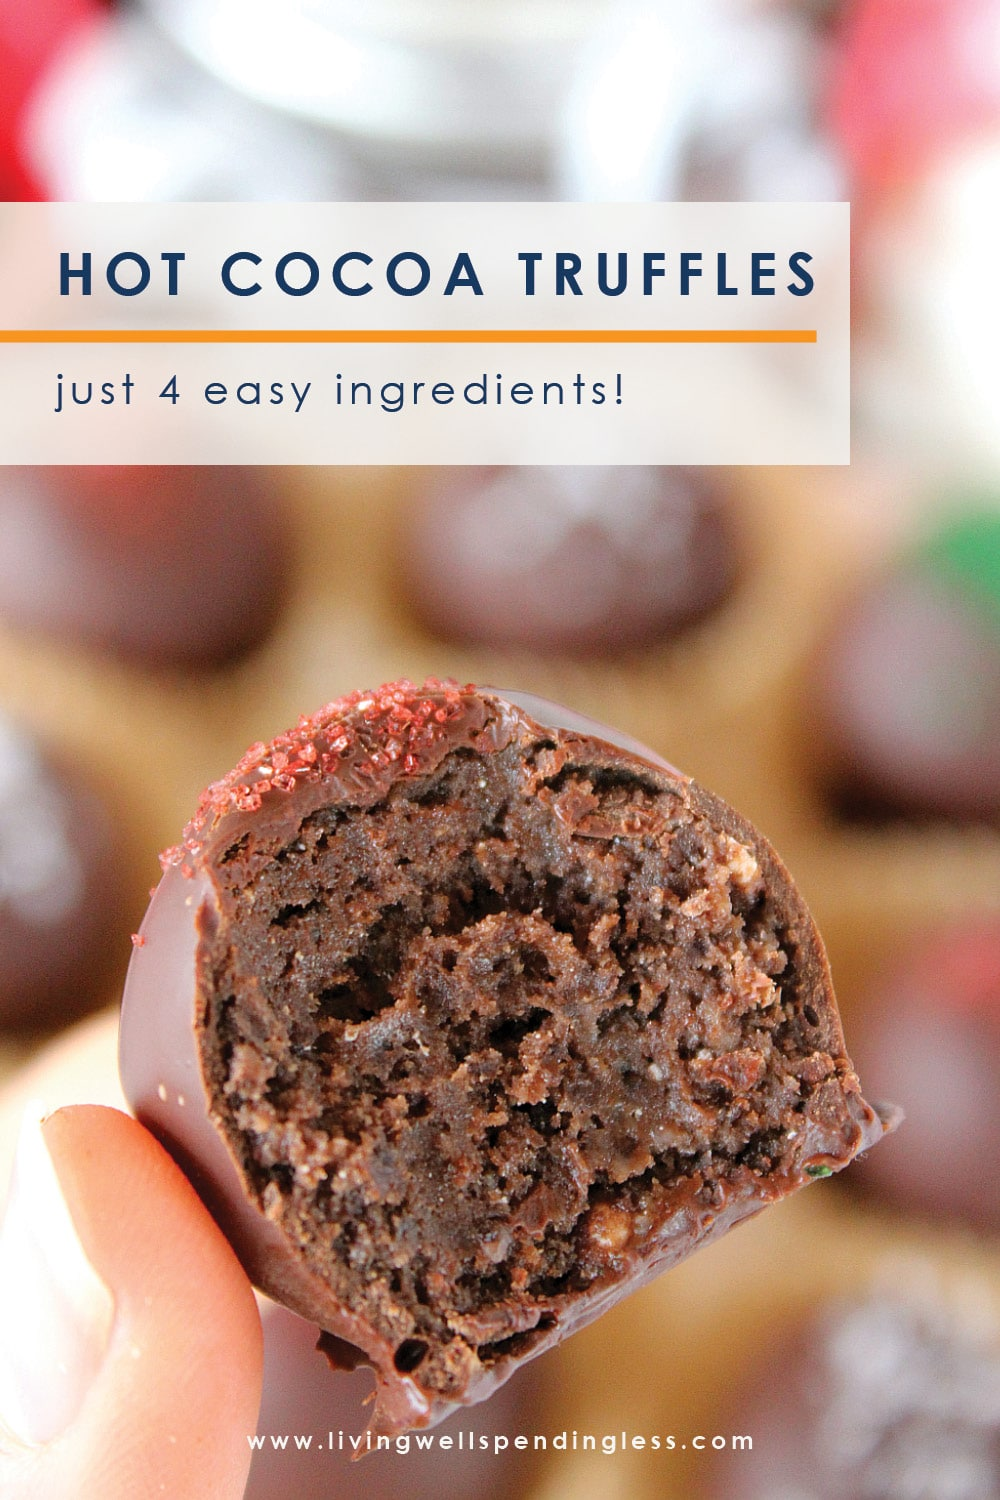 Craving a sweet treat for the holidays? These ridiculously easy Hot Cocoa Truffles come together in minutes with just 4 easy ingredients! Perfect for gifts or just because--and believe us, once you try them, you'll be hooked! #recipes #dessertrecipes #holidayrecipes #chocolaterecipes #trufflerecipes #simplerecipes #5ingredientsorless #giftideas #homemadegifts #holidays